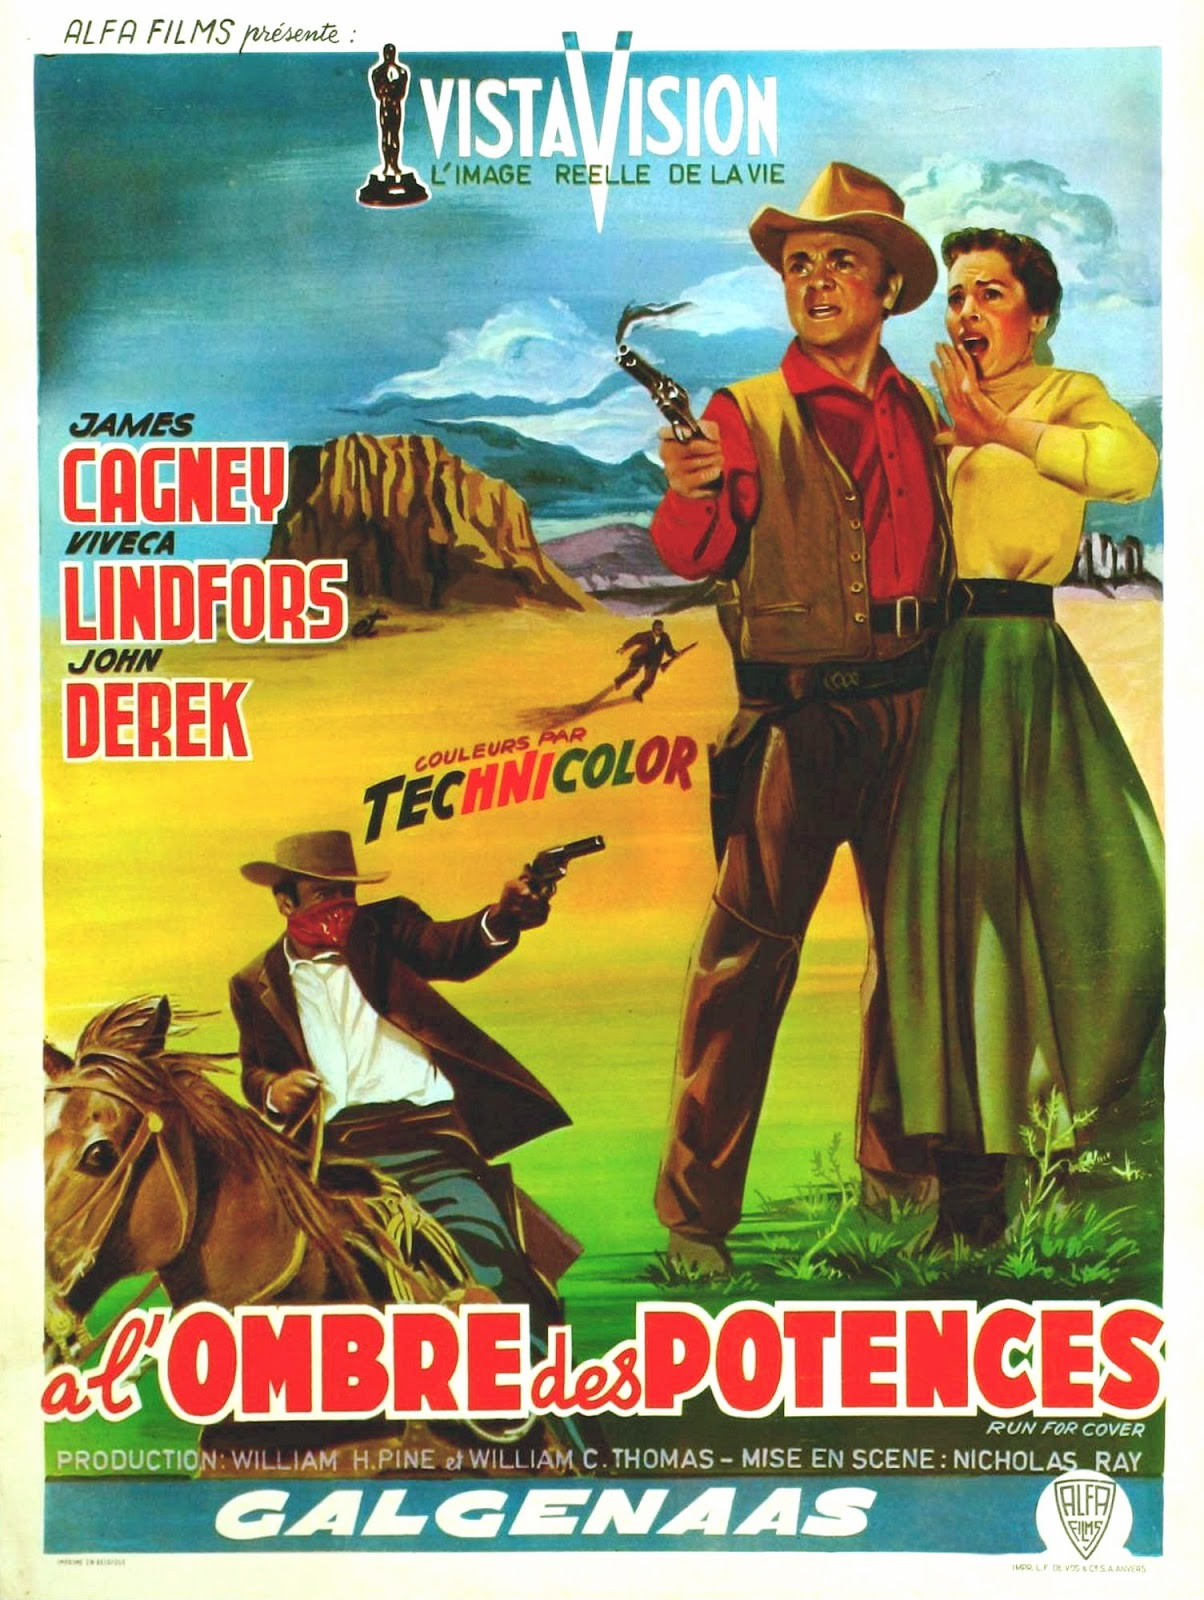 Run for Cover (AKA Colorado) | 1955 | Busca tu refugio